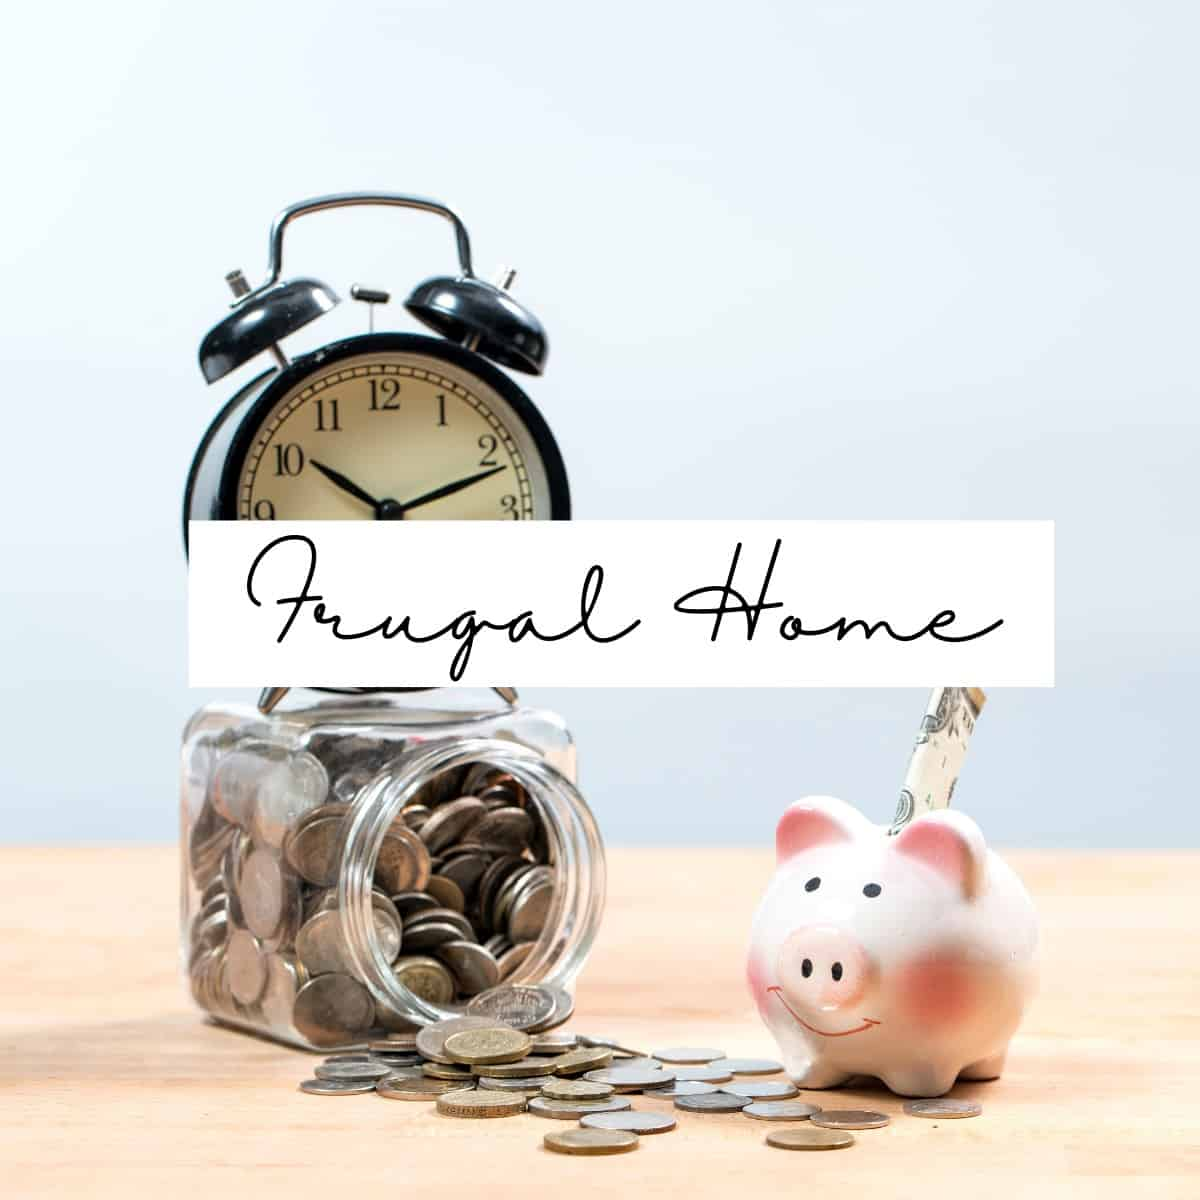 a picture of a piggy bank, coins and a clock labeled frugal home